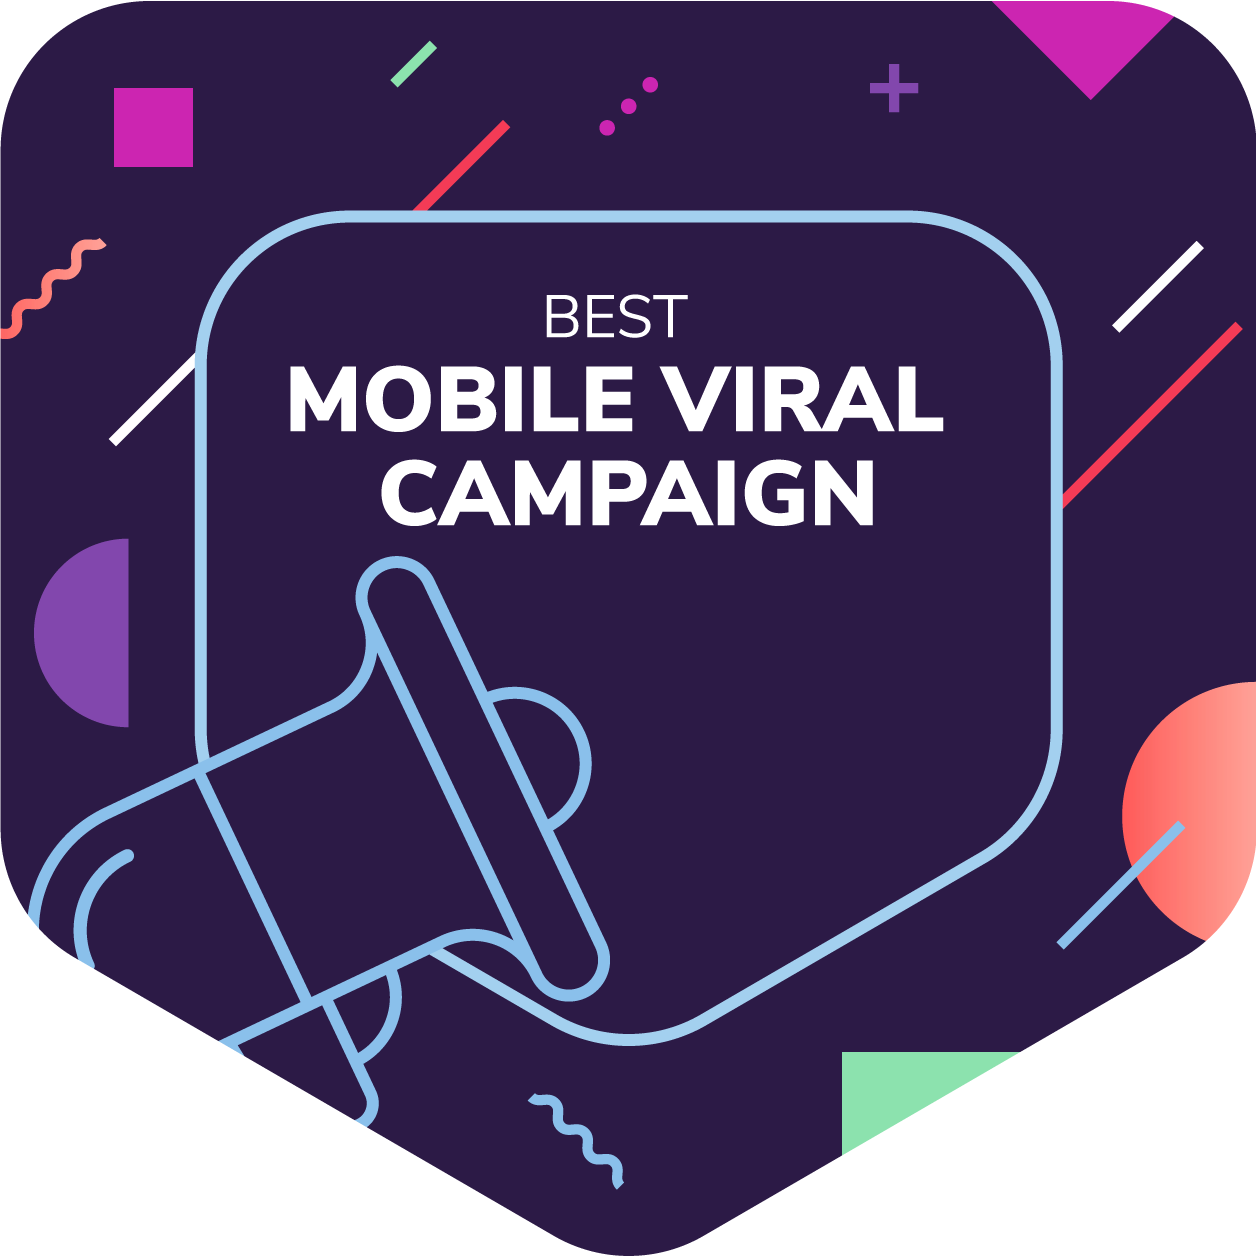 Best Mobile Viral Campaign